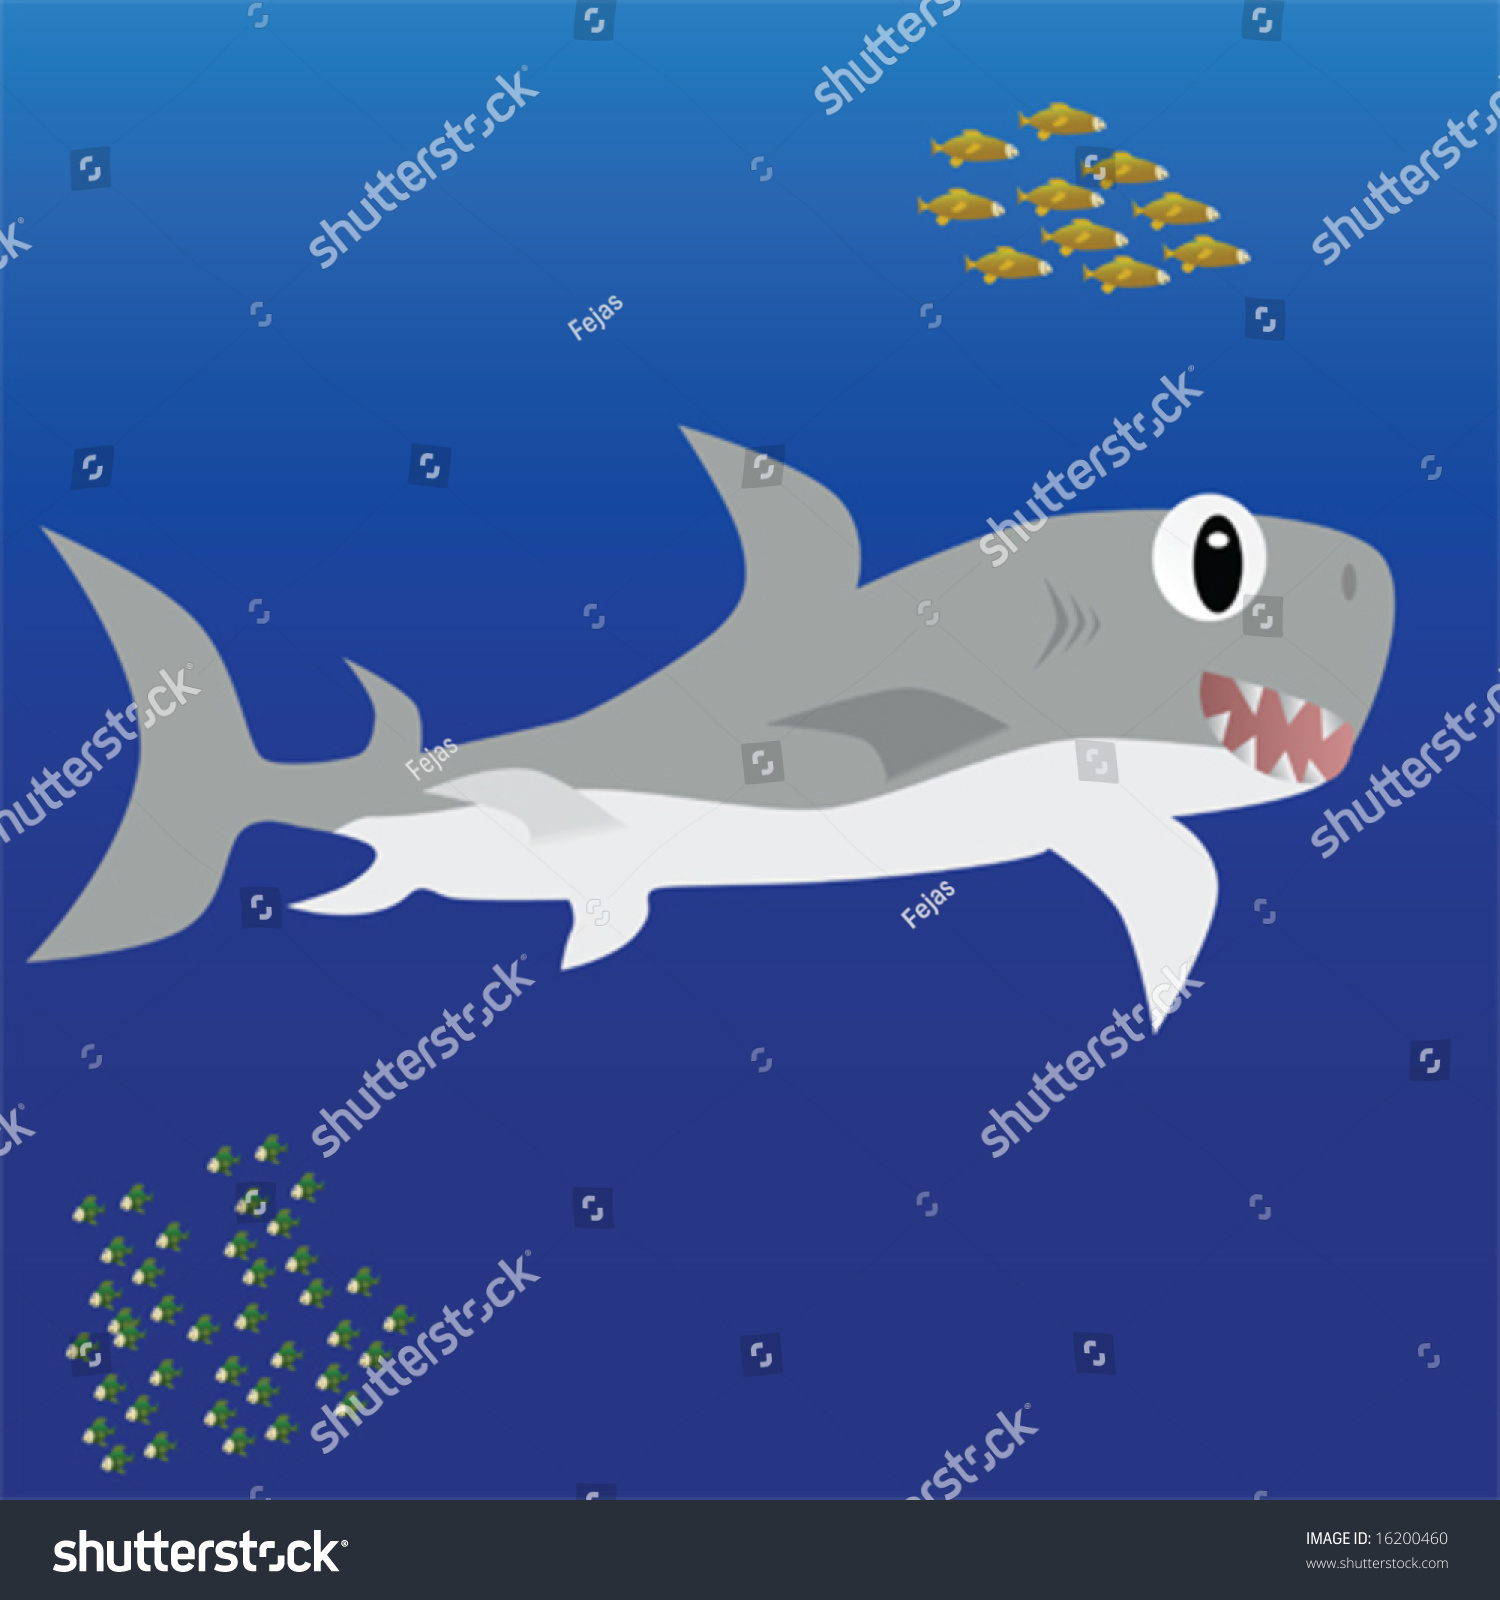 Isolation Carton Cartoon Isolation Of A Great White Shark Swimming